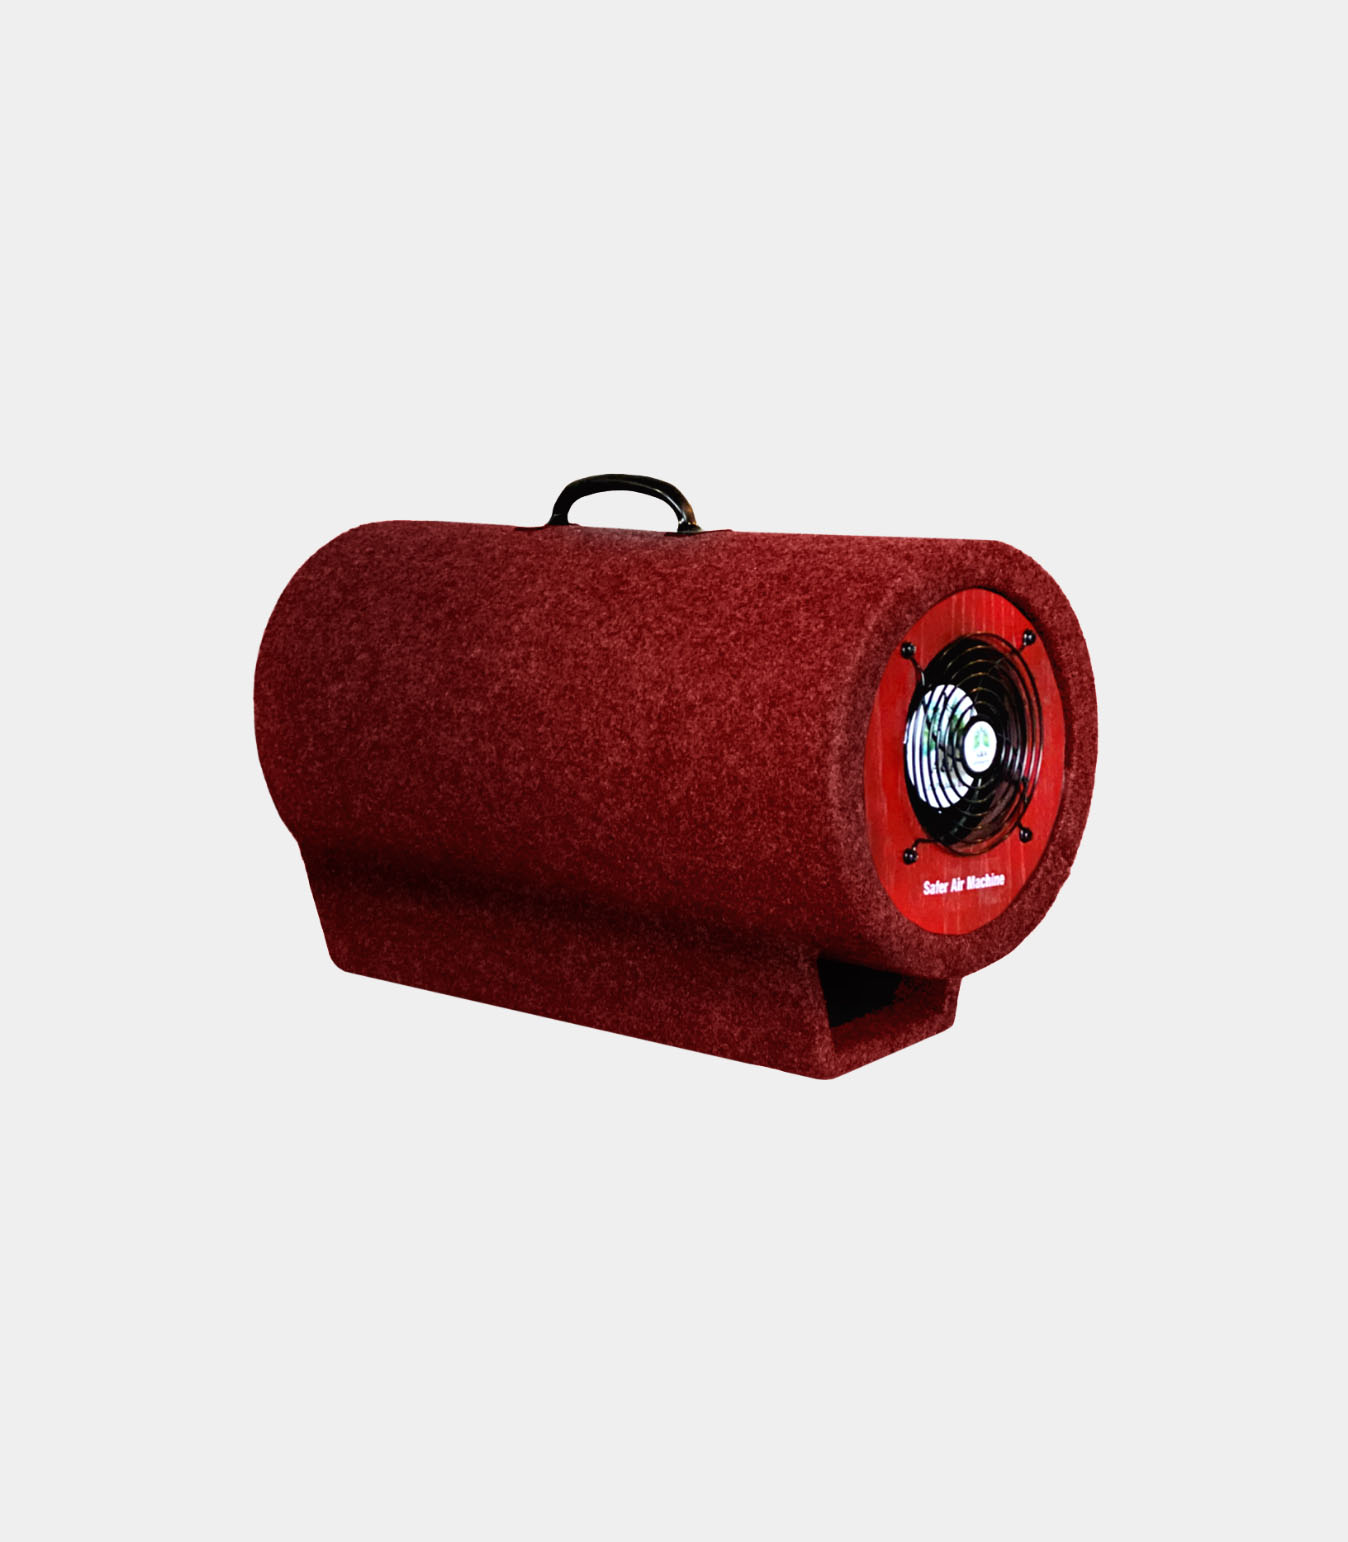 Red Portable Safer Air Machine on light gray background.